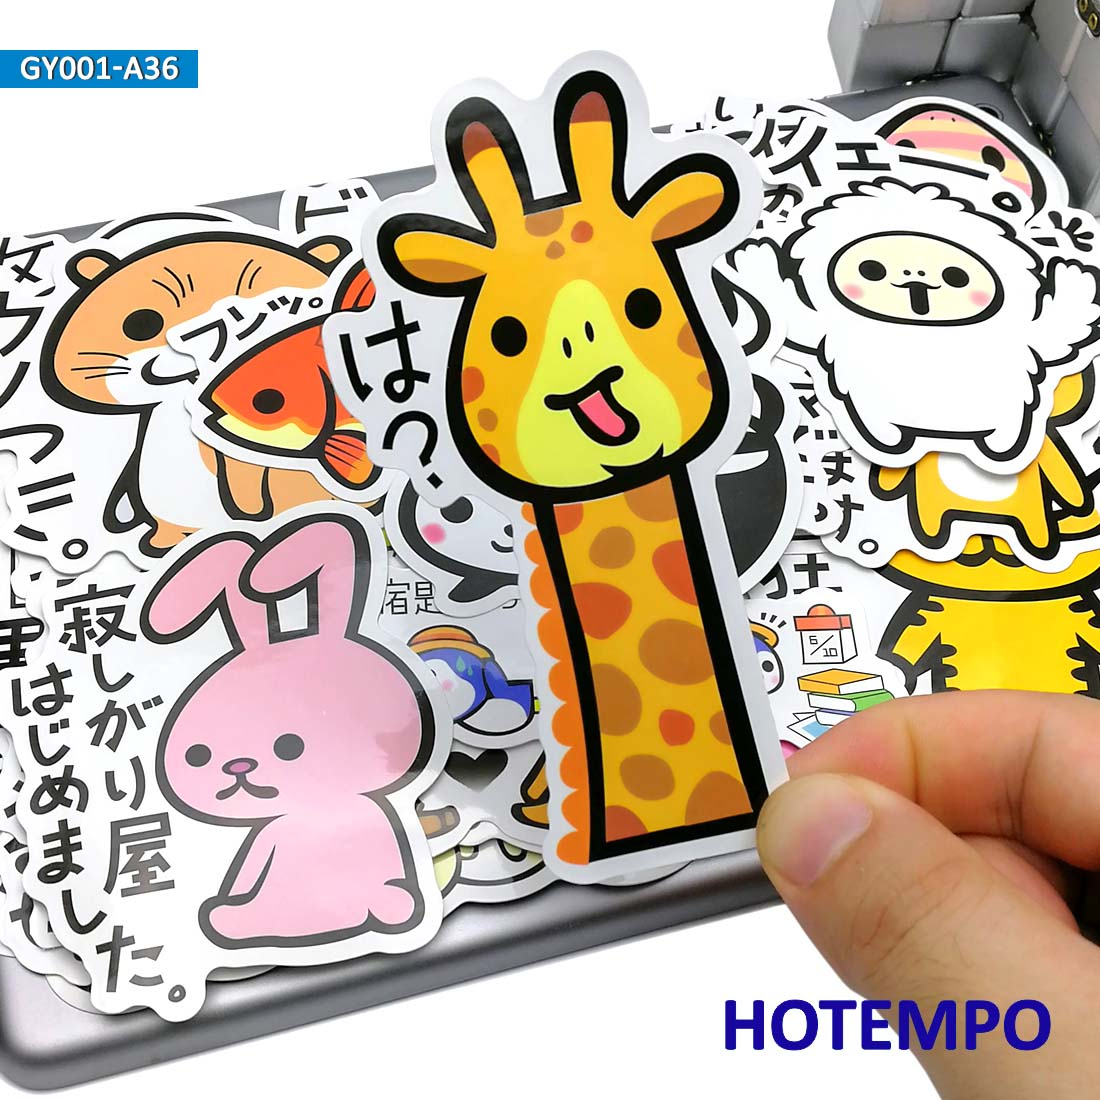 36pcs Cute Slogan Animal Japan Cartoon Style Kawaii Stickers For Child Kids Gift Phone Laptop Luggage Suitcase Stationery Decal